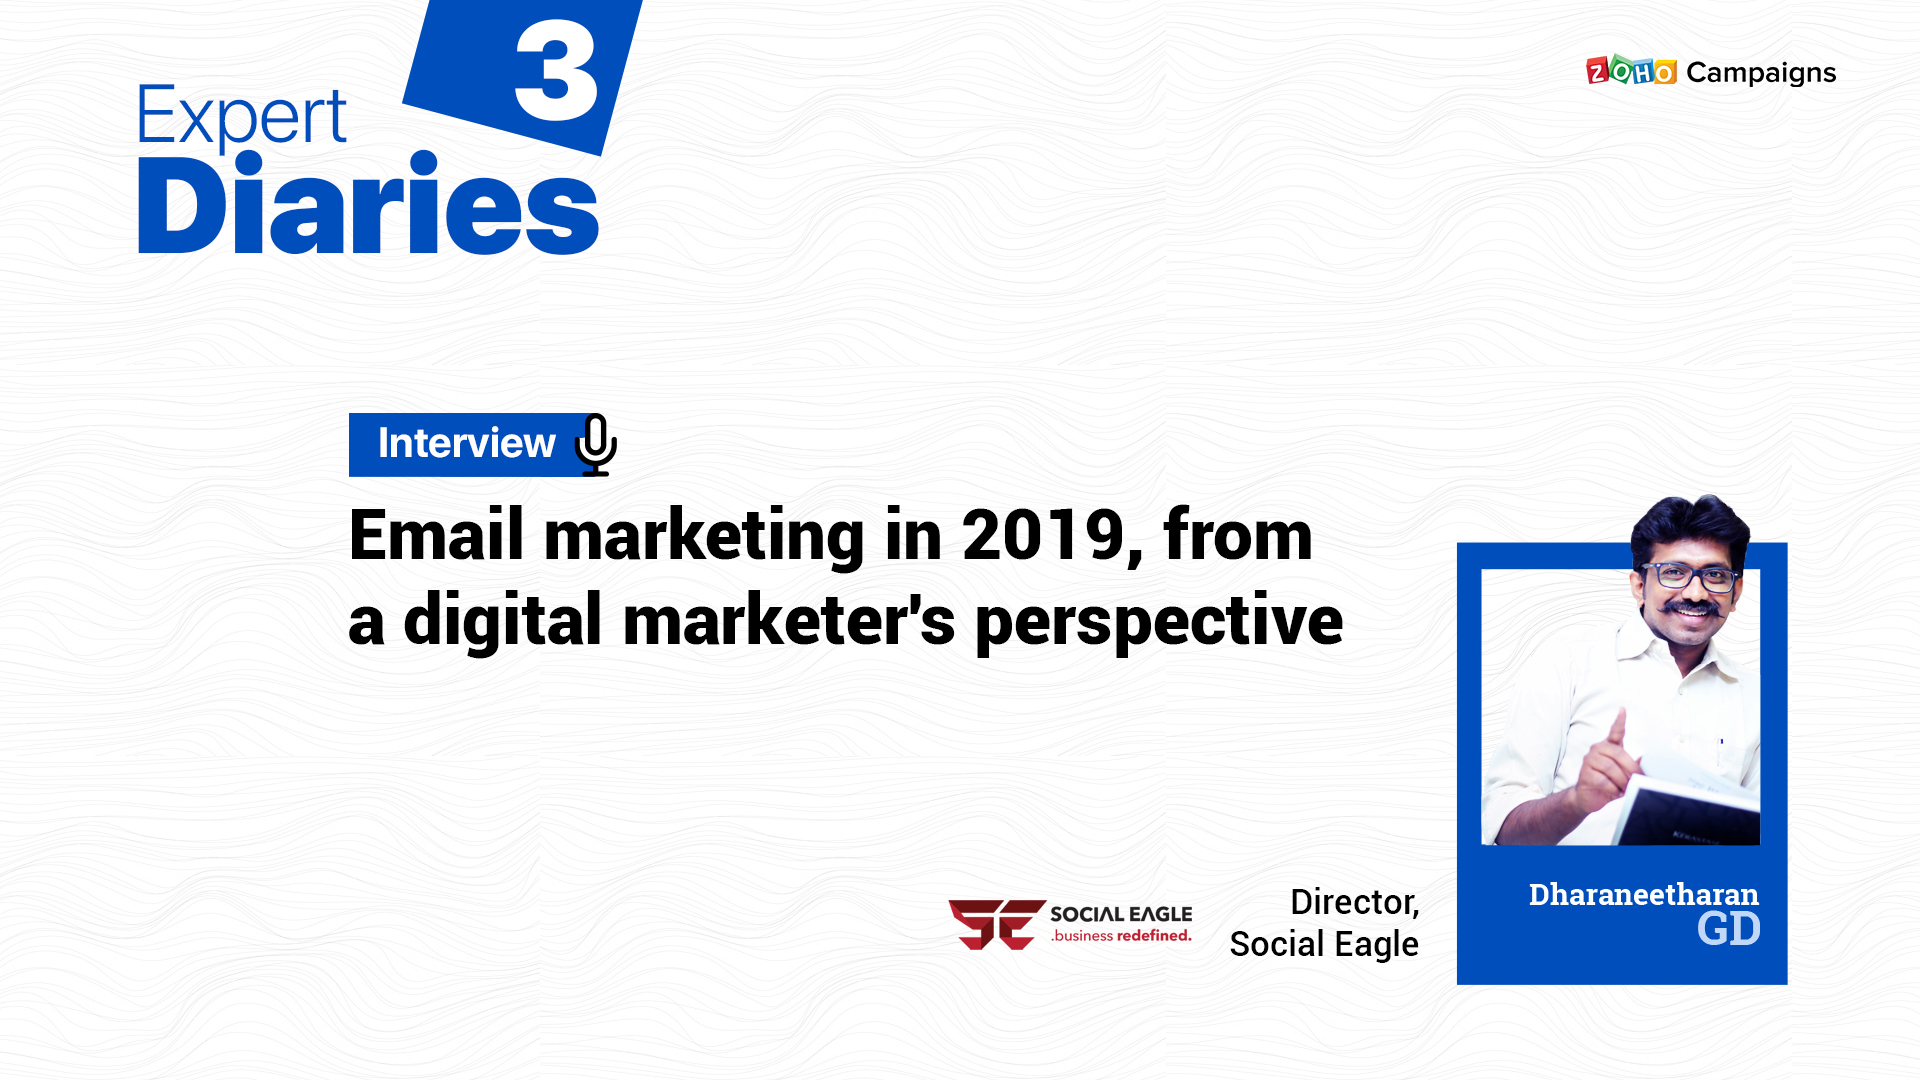 Email marketing in 2019 — a digital marketer's perspective